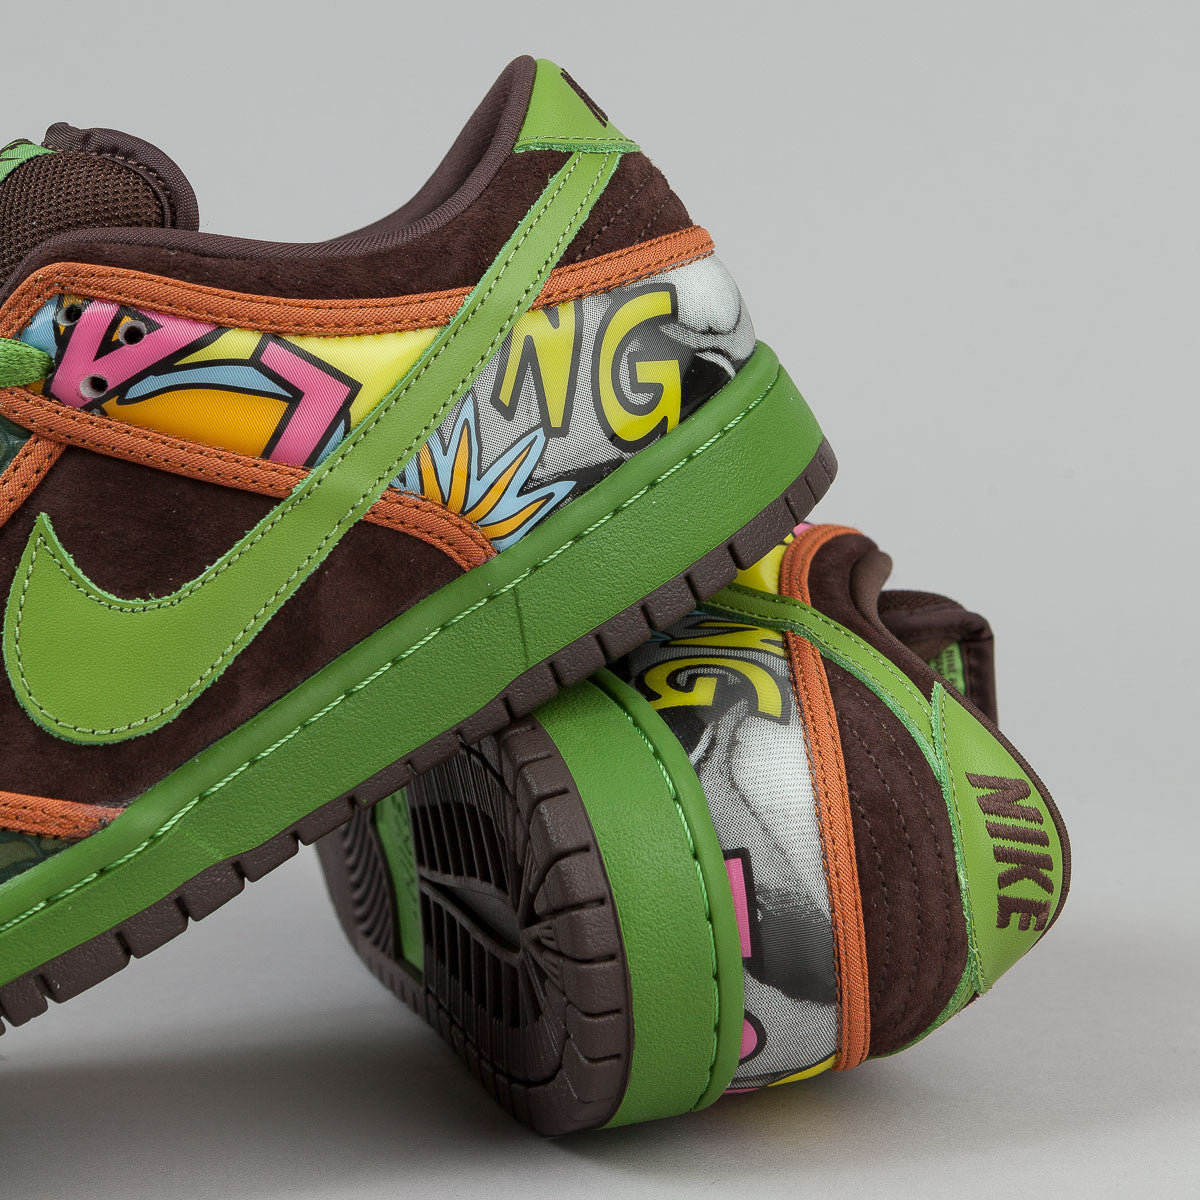 Nike SB Dunk Low Premium Quickstrike Shoes - De La Soul